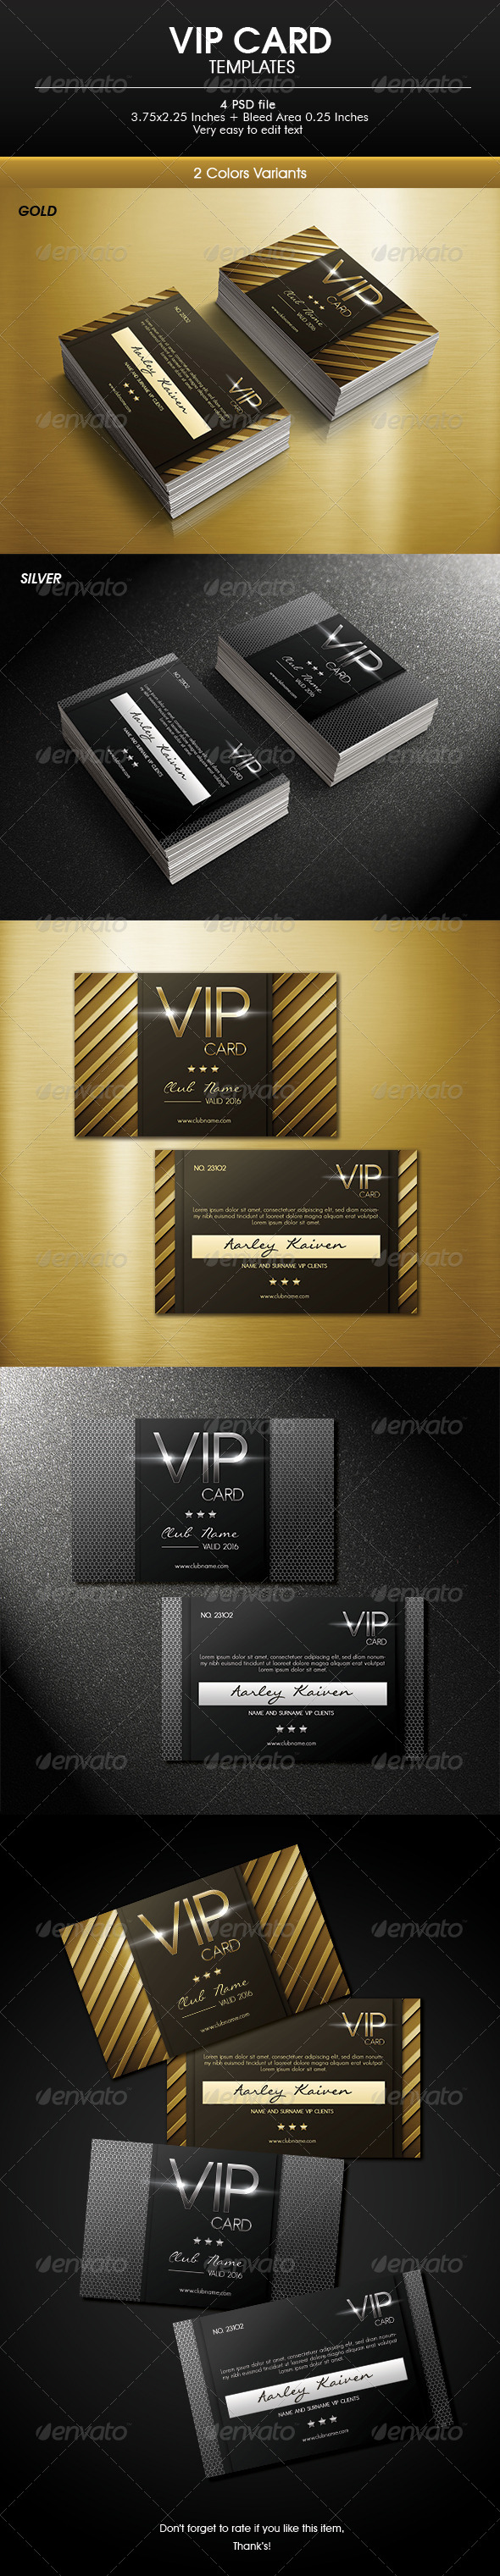 Multipurpose Vip Card - Loyalty Cards Cards & Invites